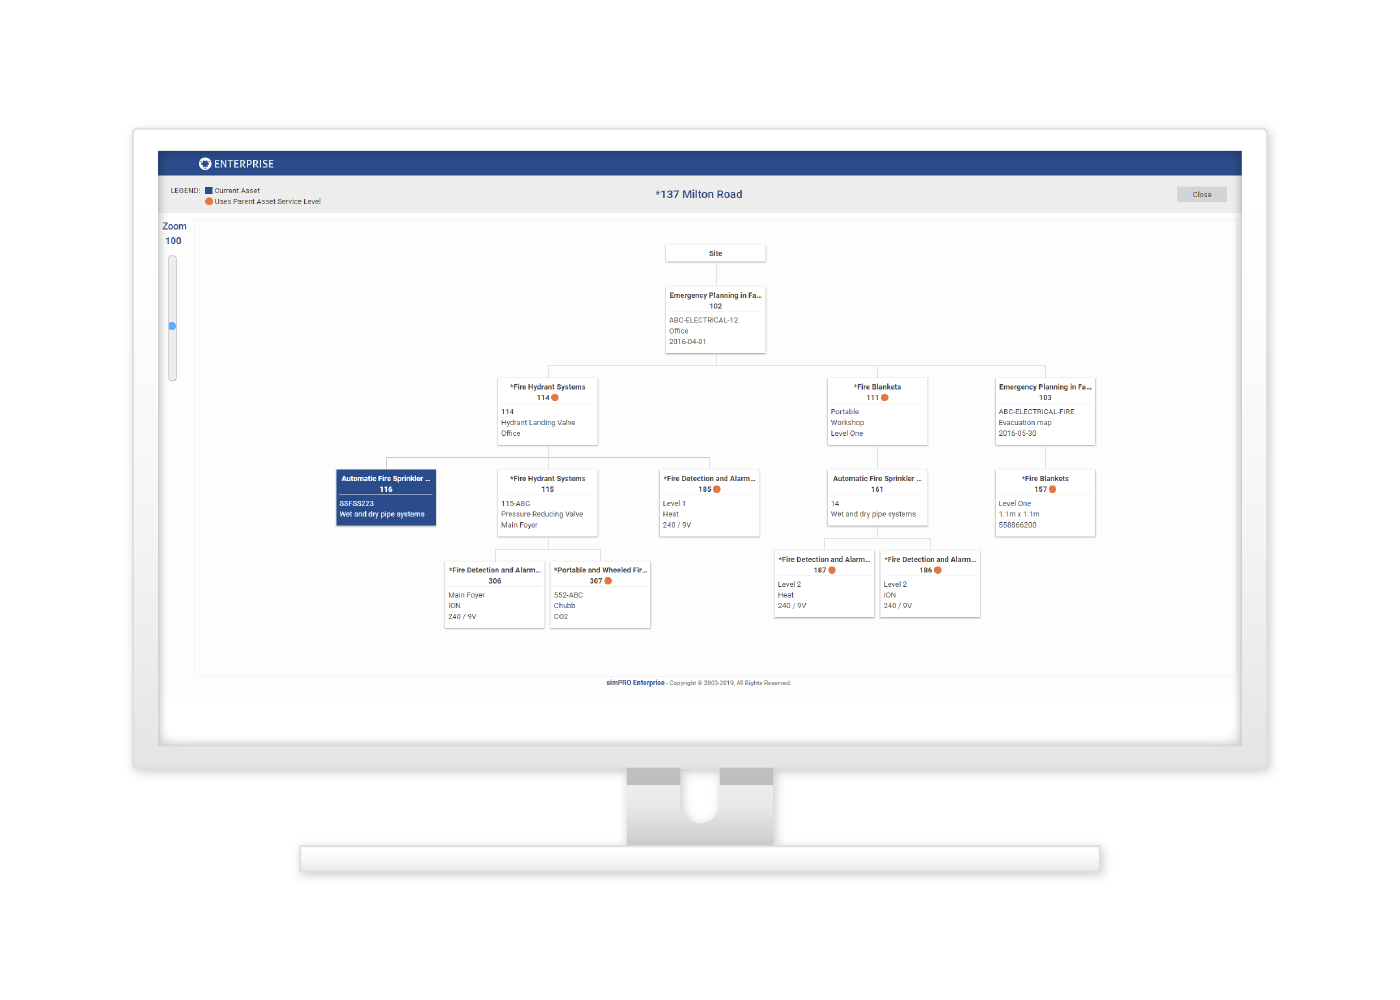 Assets Tree View